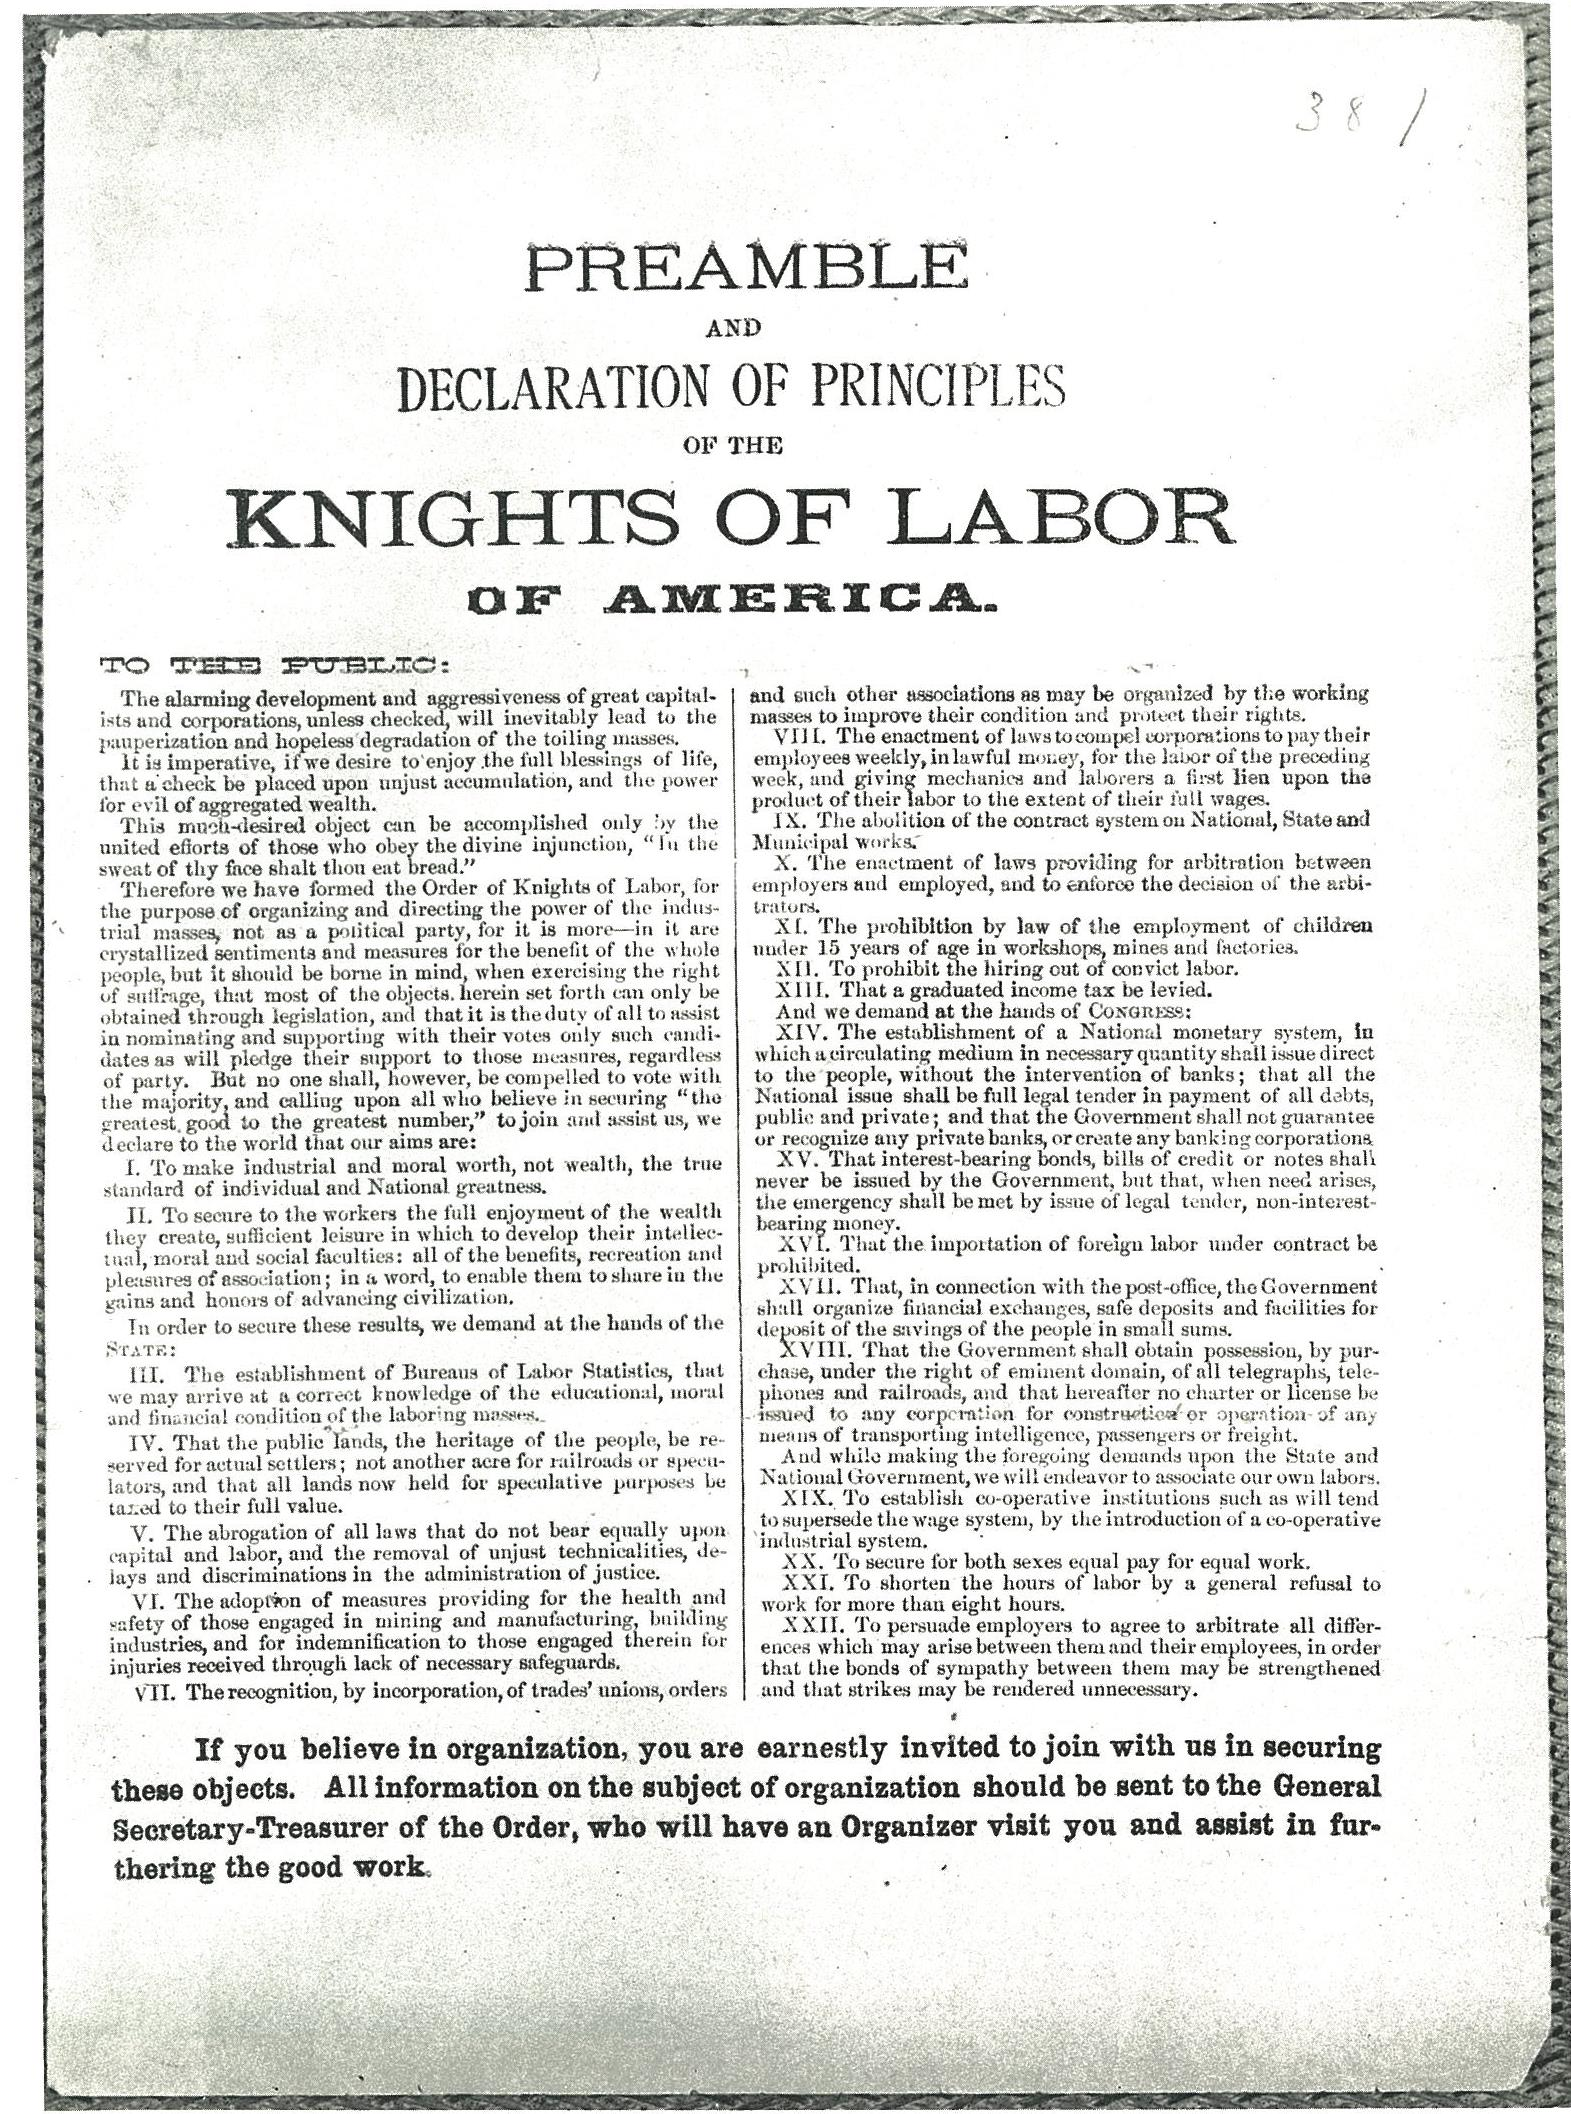 an essay on the influence of the knights of labor in shaping american labor groups The knights of labor were originally part of the trades and labor congress of canada when it was organized in 1886 but the members of the knights of labor all shared a fundamental principle which sought the cooperation of various their influence, although unknown by many, has and will.